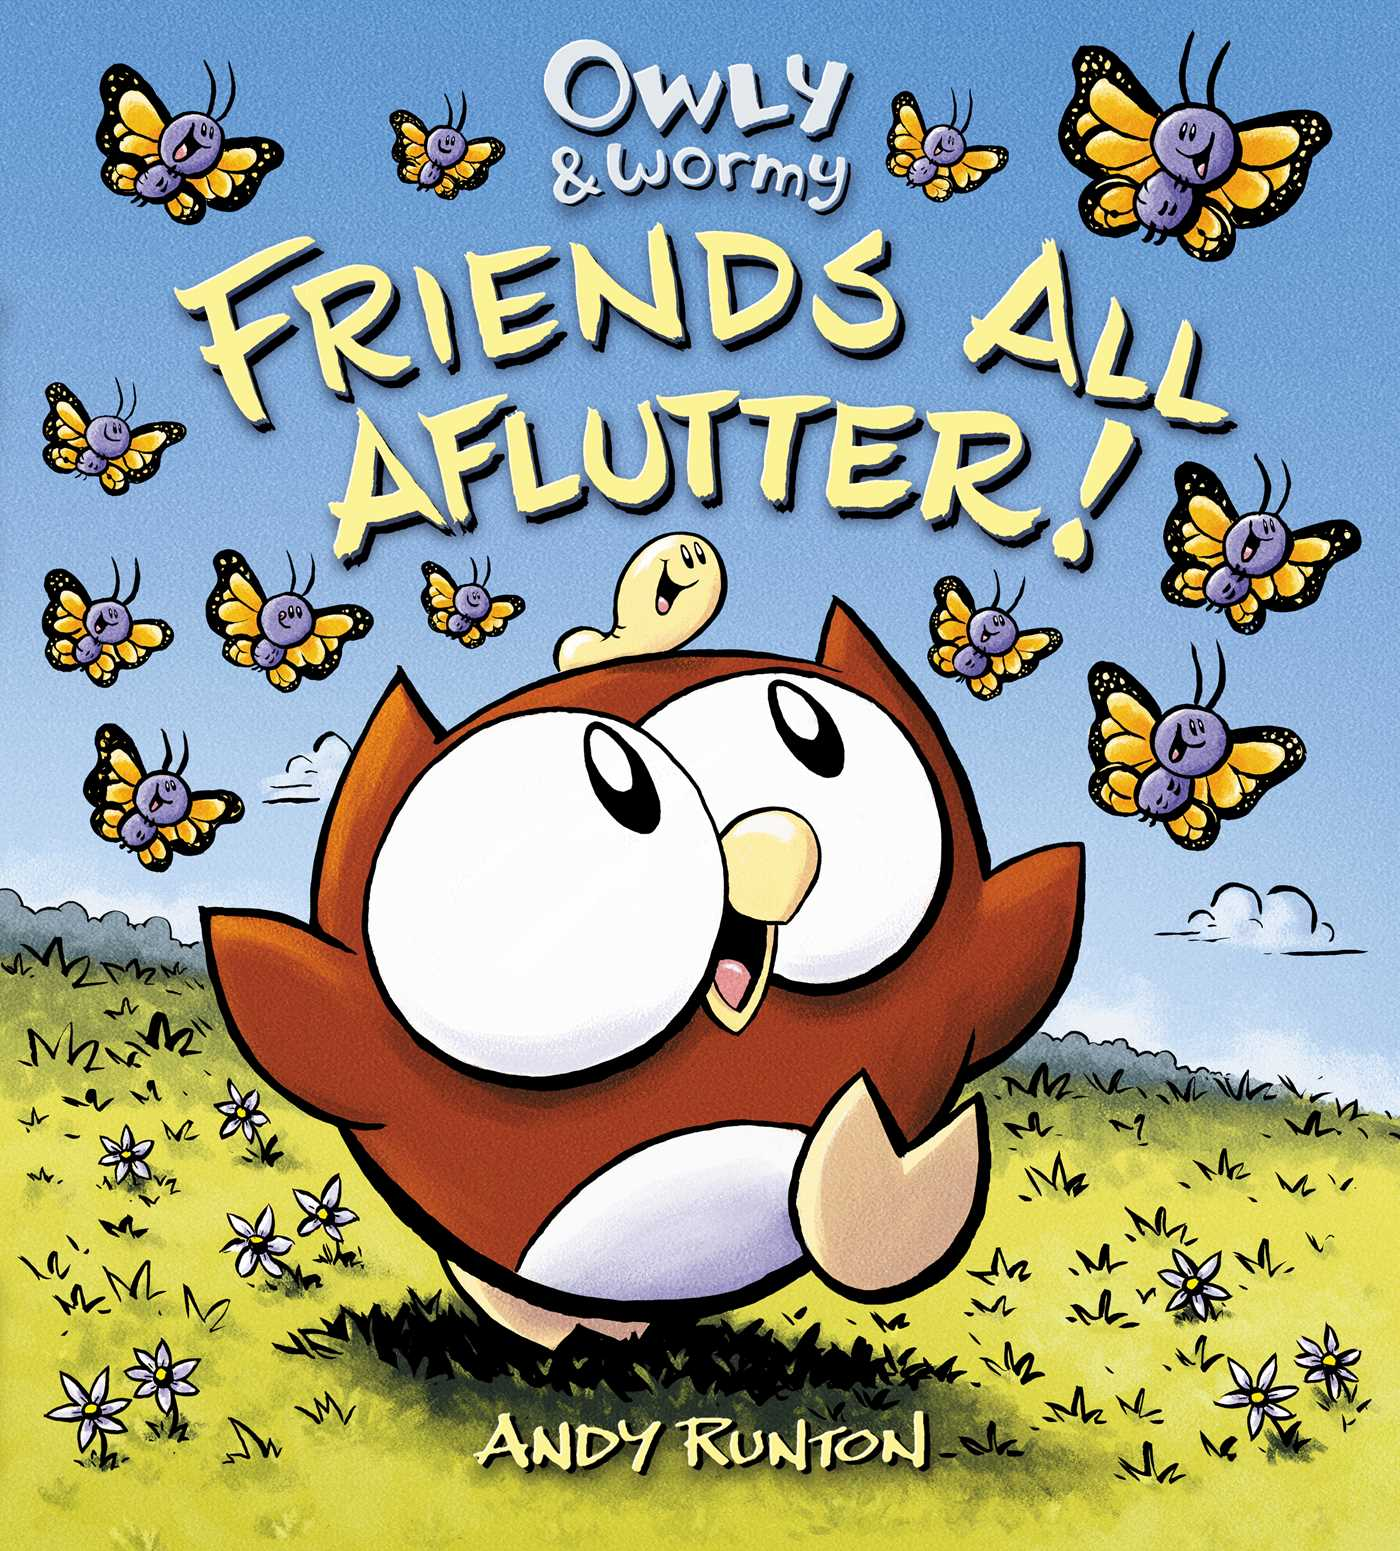 Owly wormy friends all aflutter 9781442433526 hr